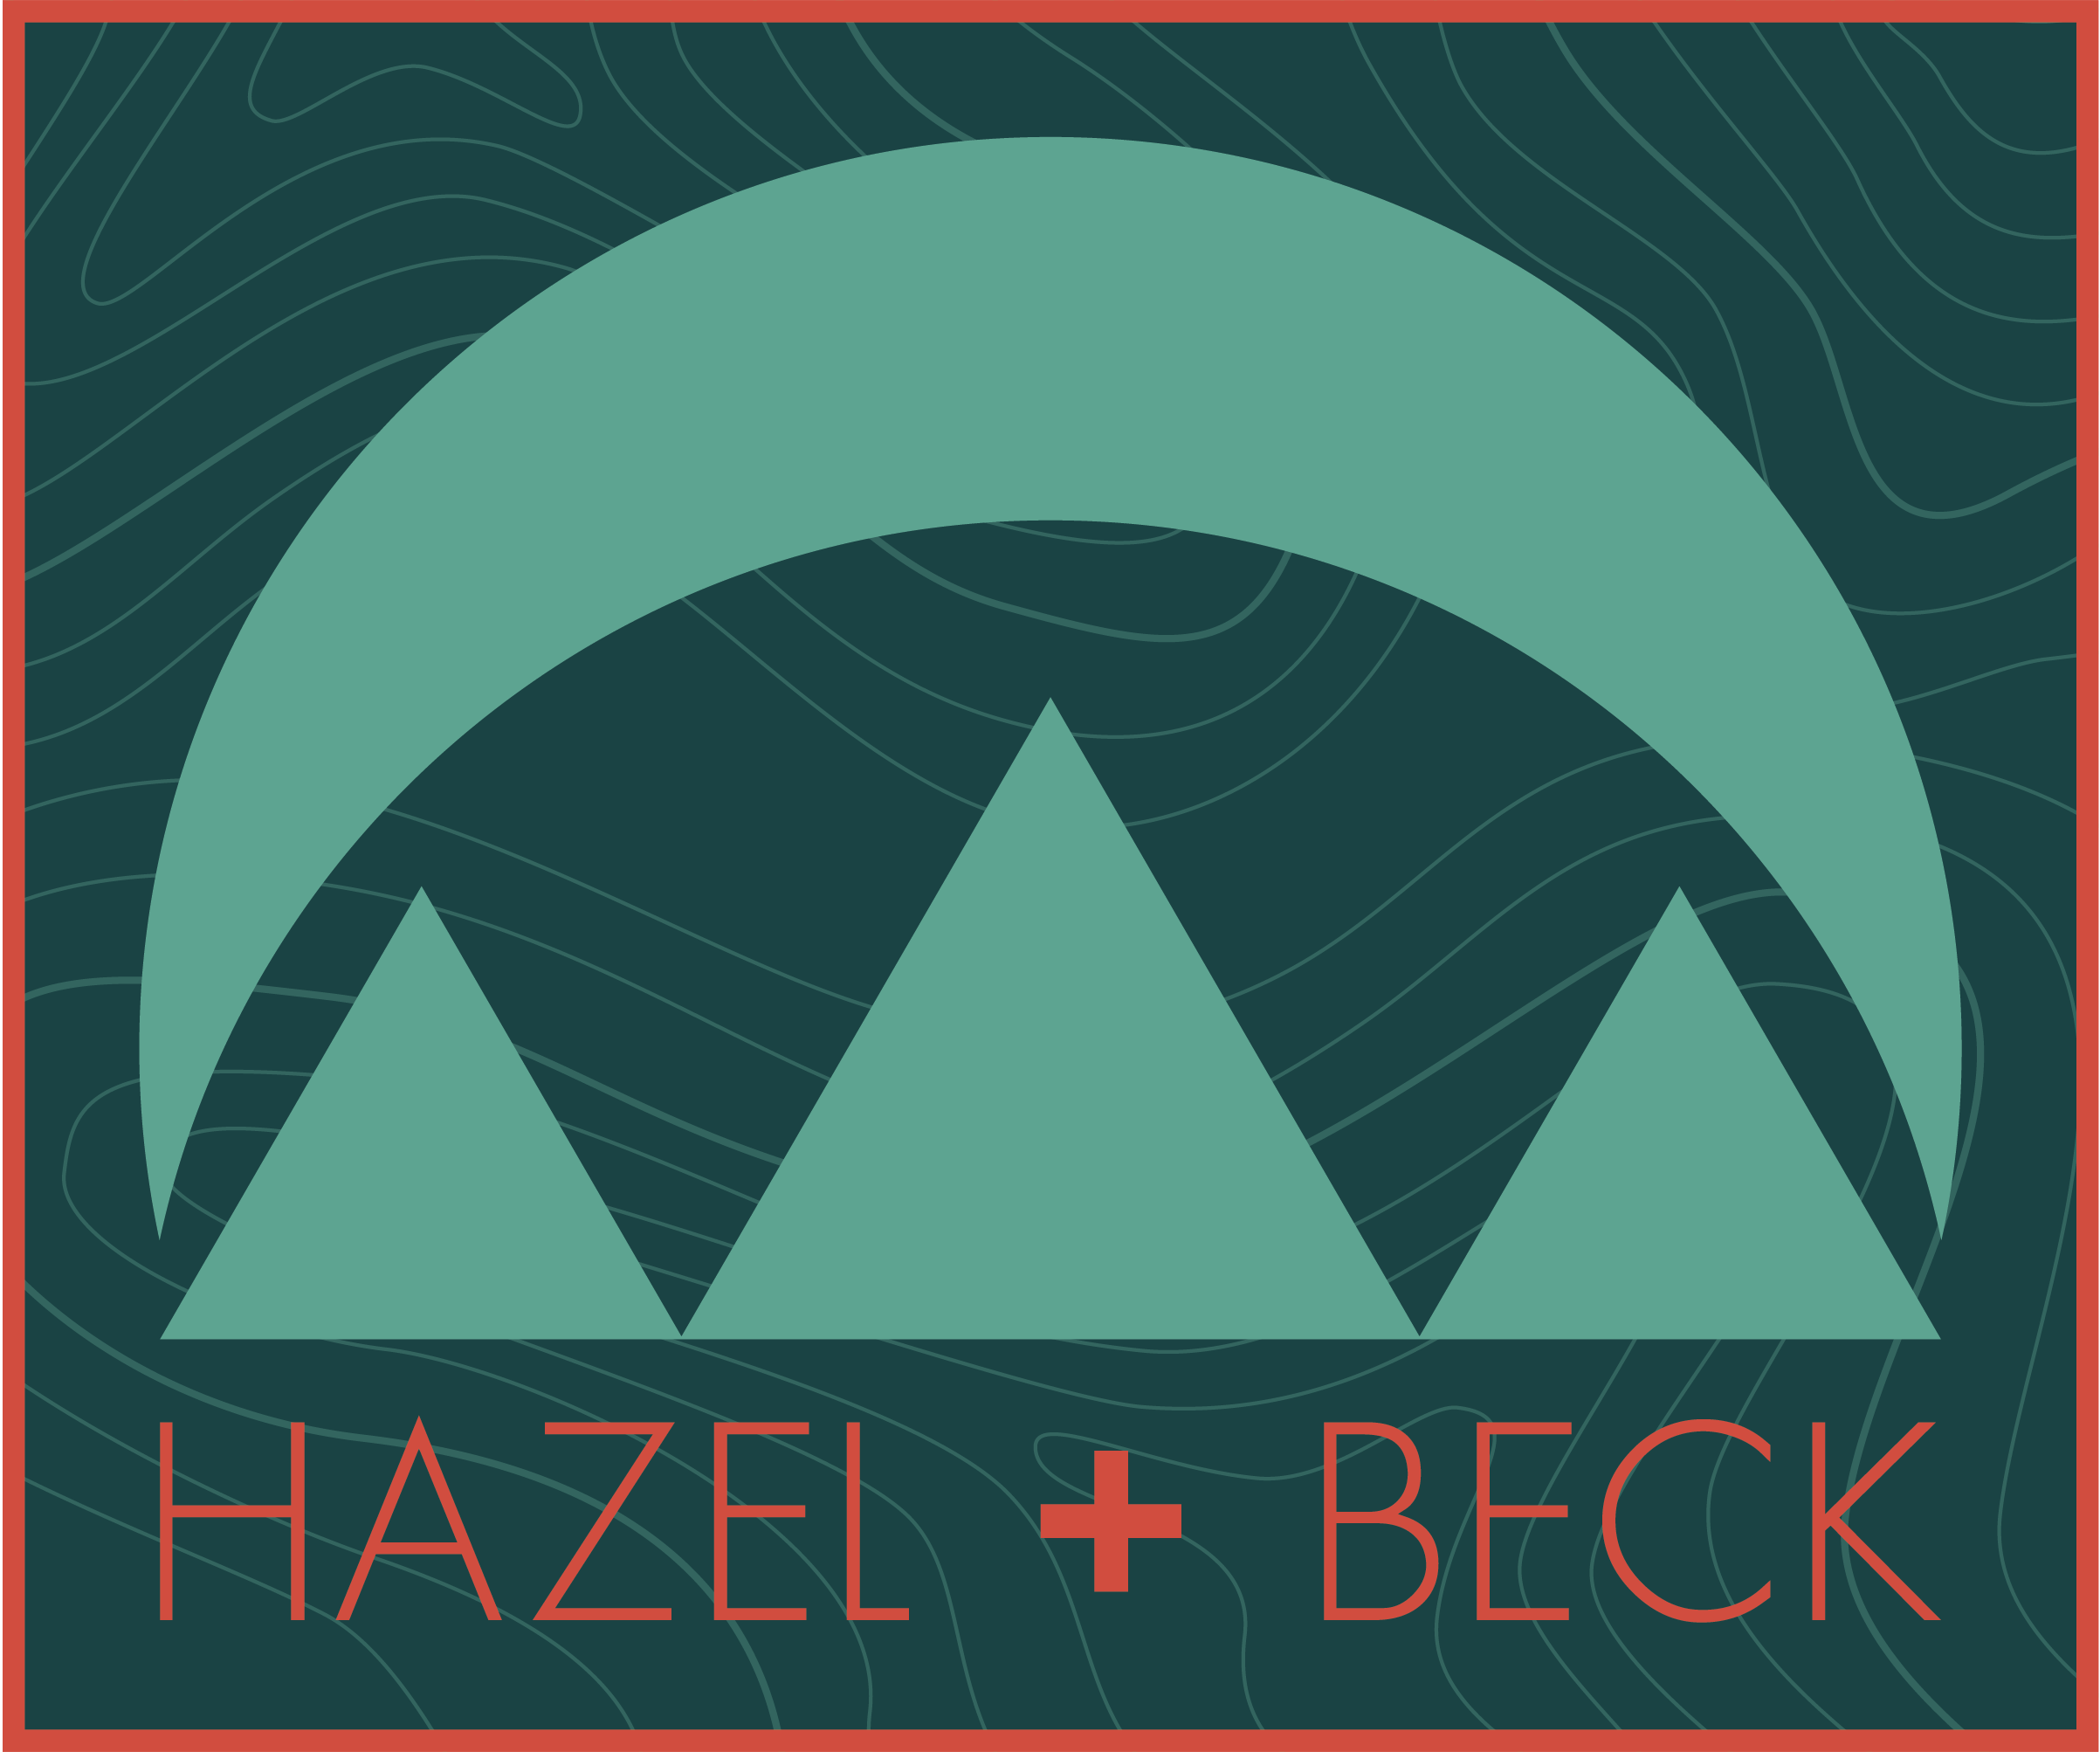 ALTERNATIVE / SECONDARY LOGO   From the first round of client presentations:  Echoing the topographic patterning in the primary logo above, the stylized topographic pattern of the background of this version provides visual interest, association with the mountains and outdoors, ties to primary logo, and enables the client the flexibility for any reproduction process or medium they may encounter.    This design can be further simplified to simply the geometric icons with or without the logotype. The flexibility of this design addresses all needs for today's range of output needs for the small business owner. The stylized topographic pattern can be utilized as a motif for a number of applications across the board.